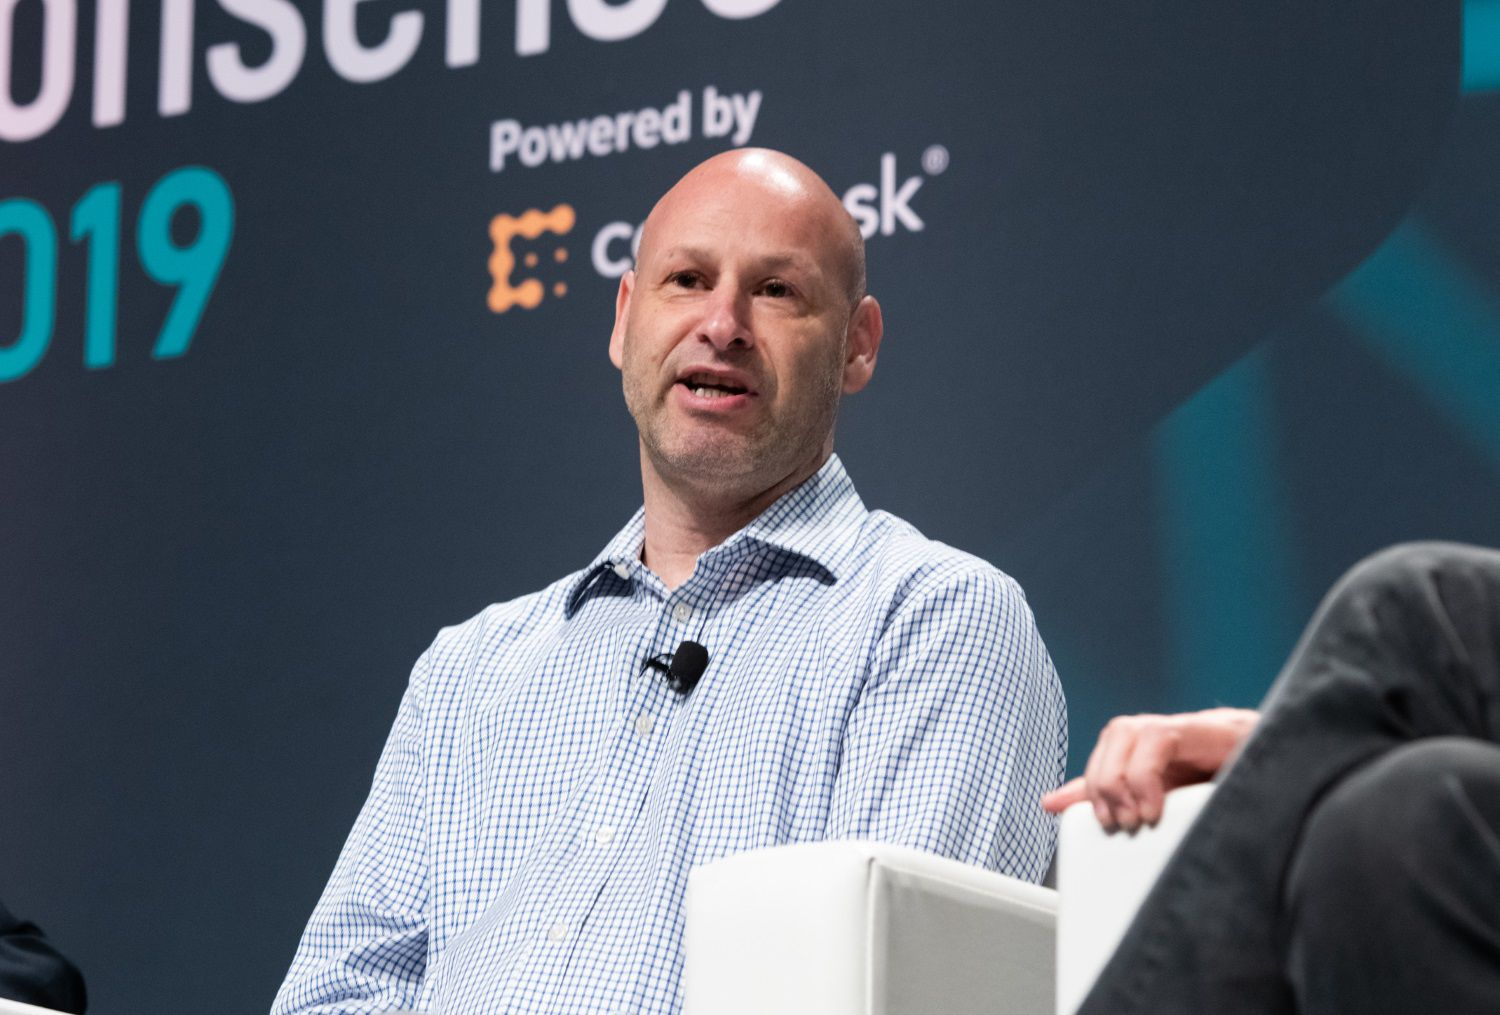 ConsenSys Holds Funding Round Talks With $3B Valuation: Reporton October 11, 2021 at 8:33 am